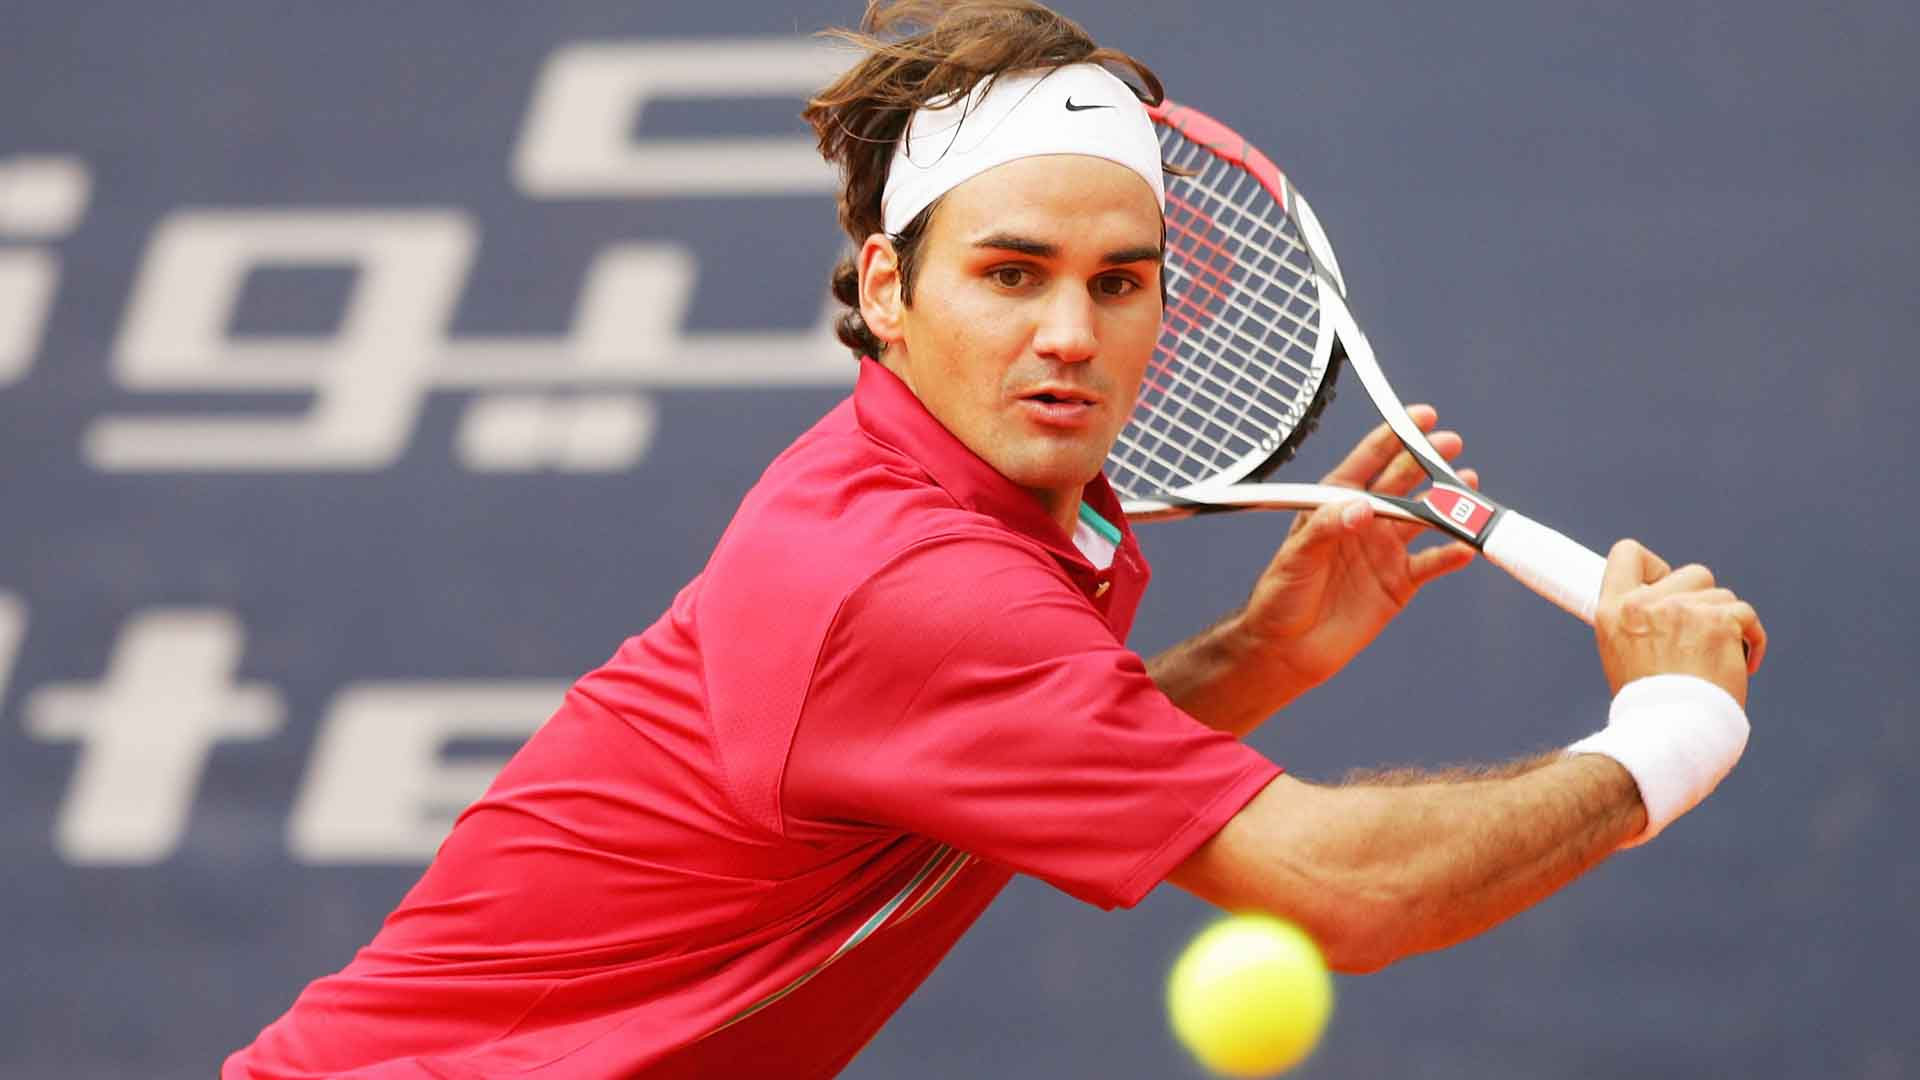 <a href='/en/players/roger-federer/f324/overview'>Roger Federer</a> owns a tournament record four titles at the <a href='/en/tournaments/hamburg/414/overview'>Hamburg European Open</a>.